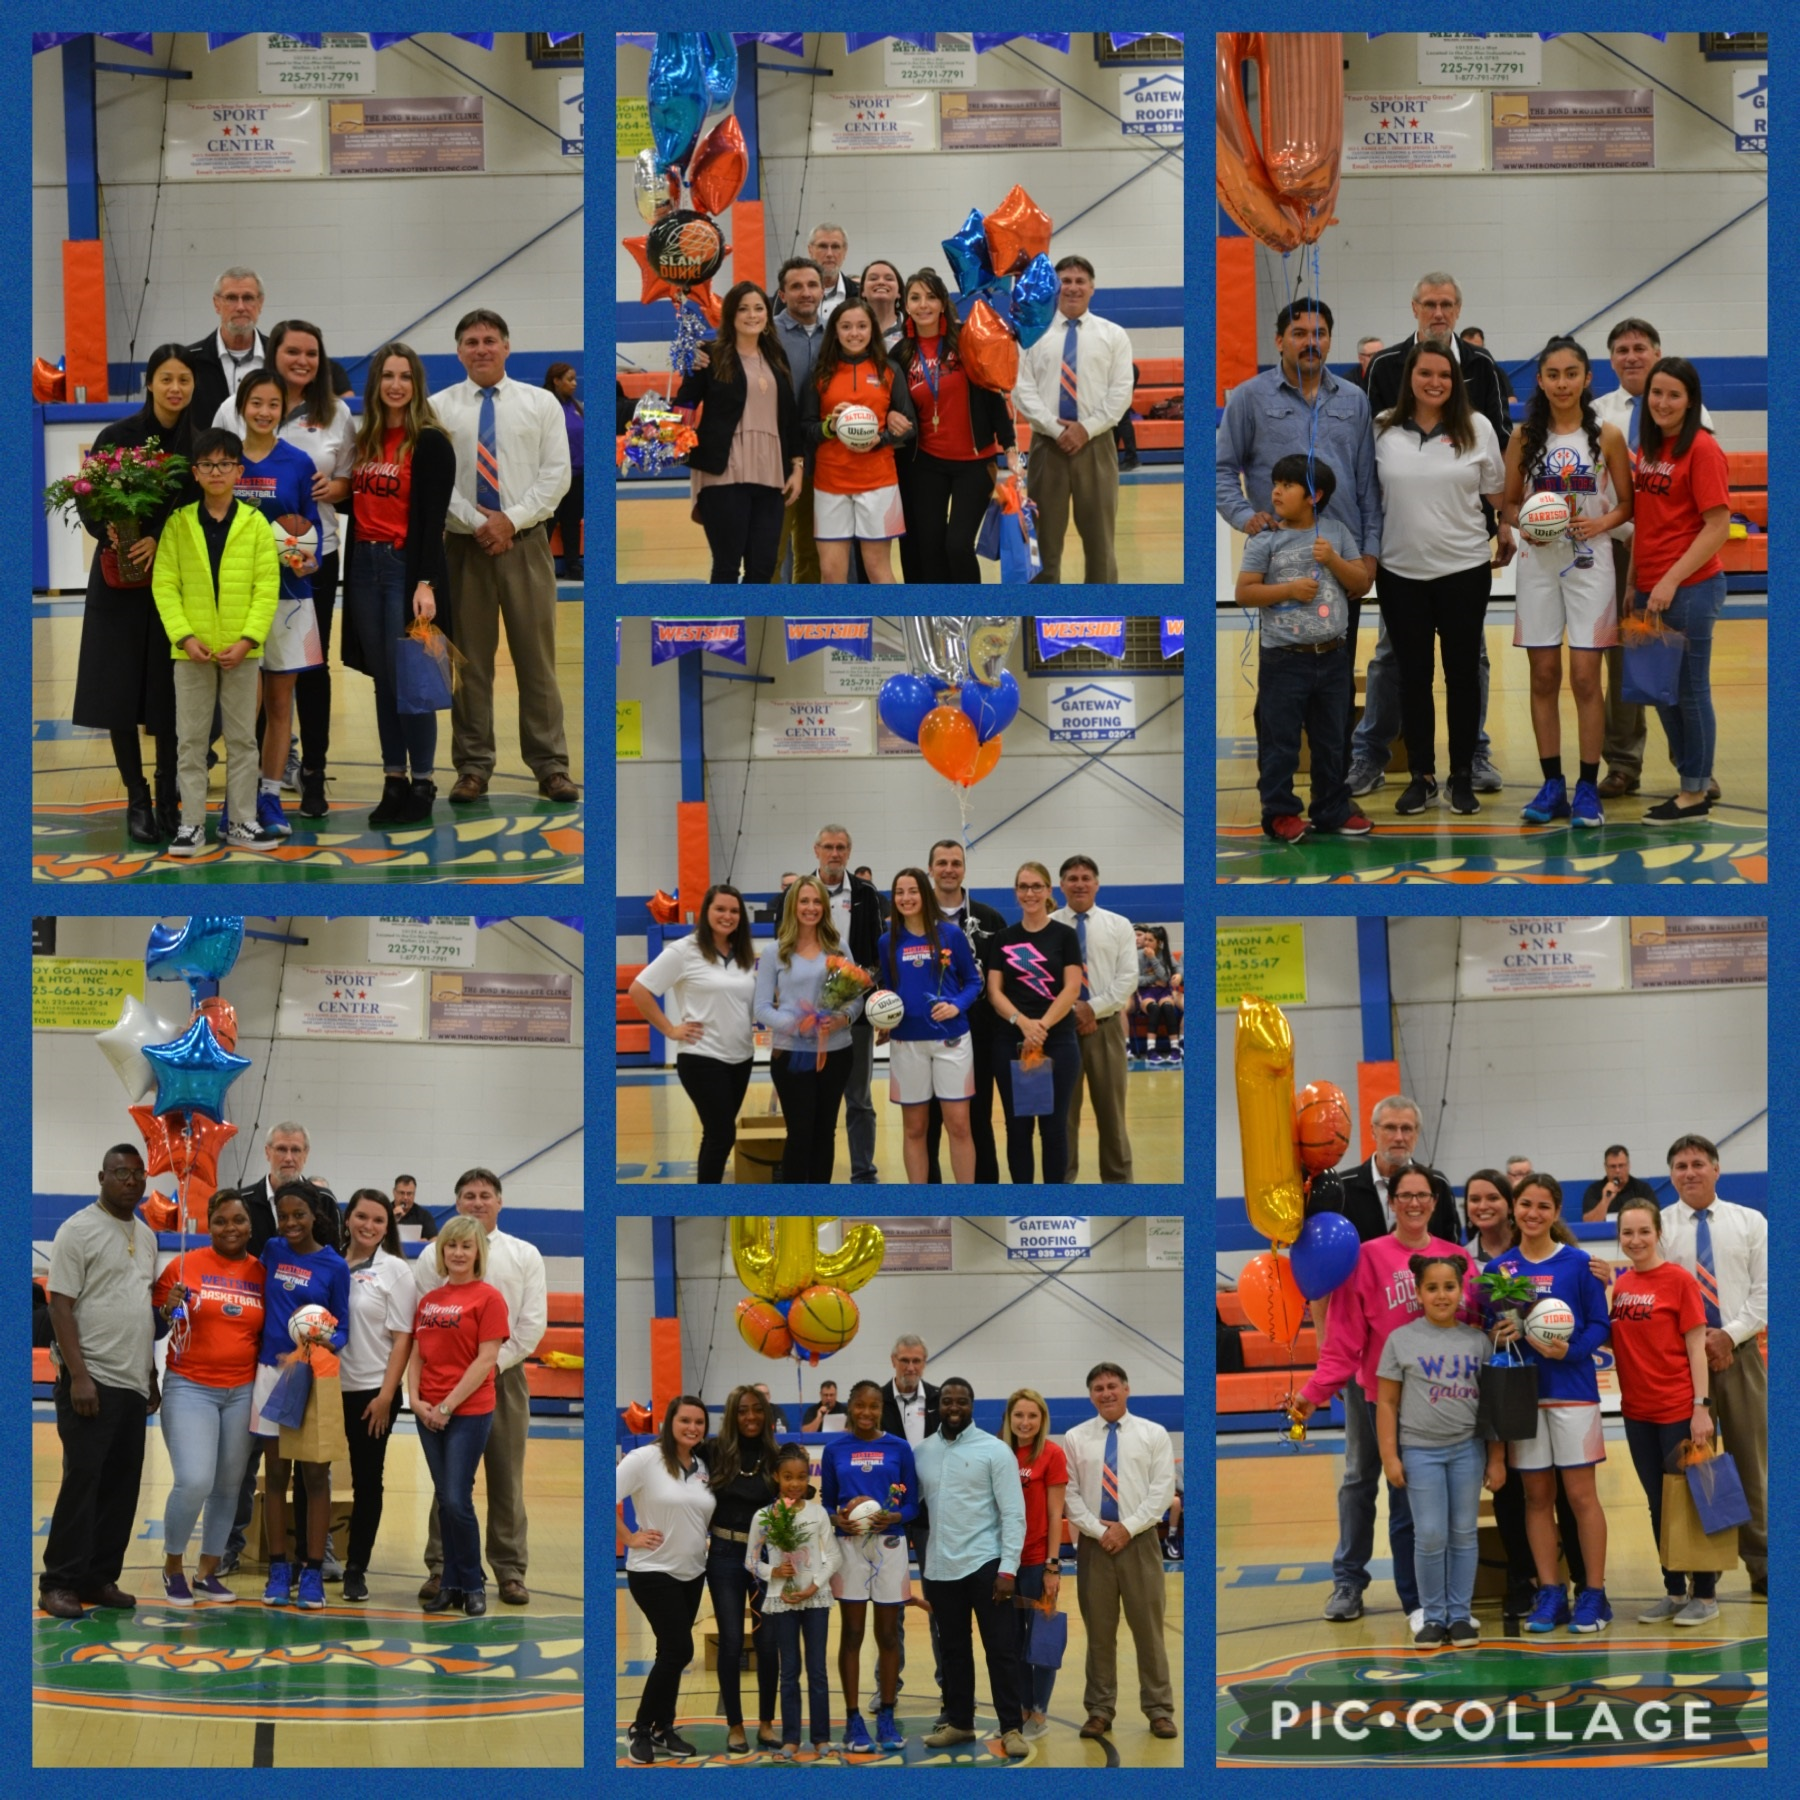 8th grade night 2019-20